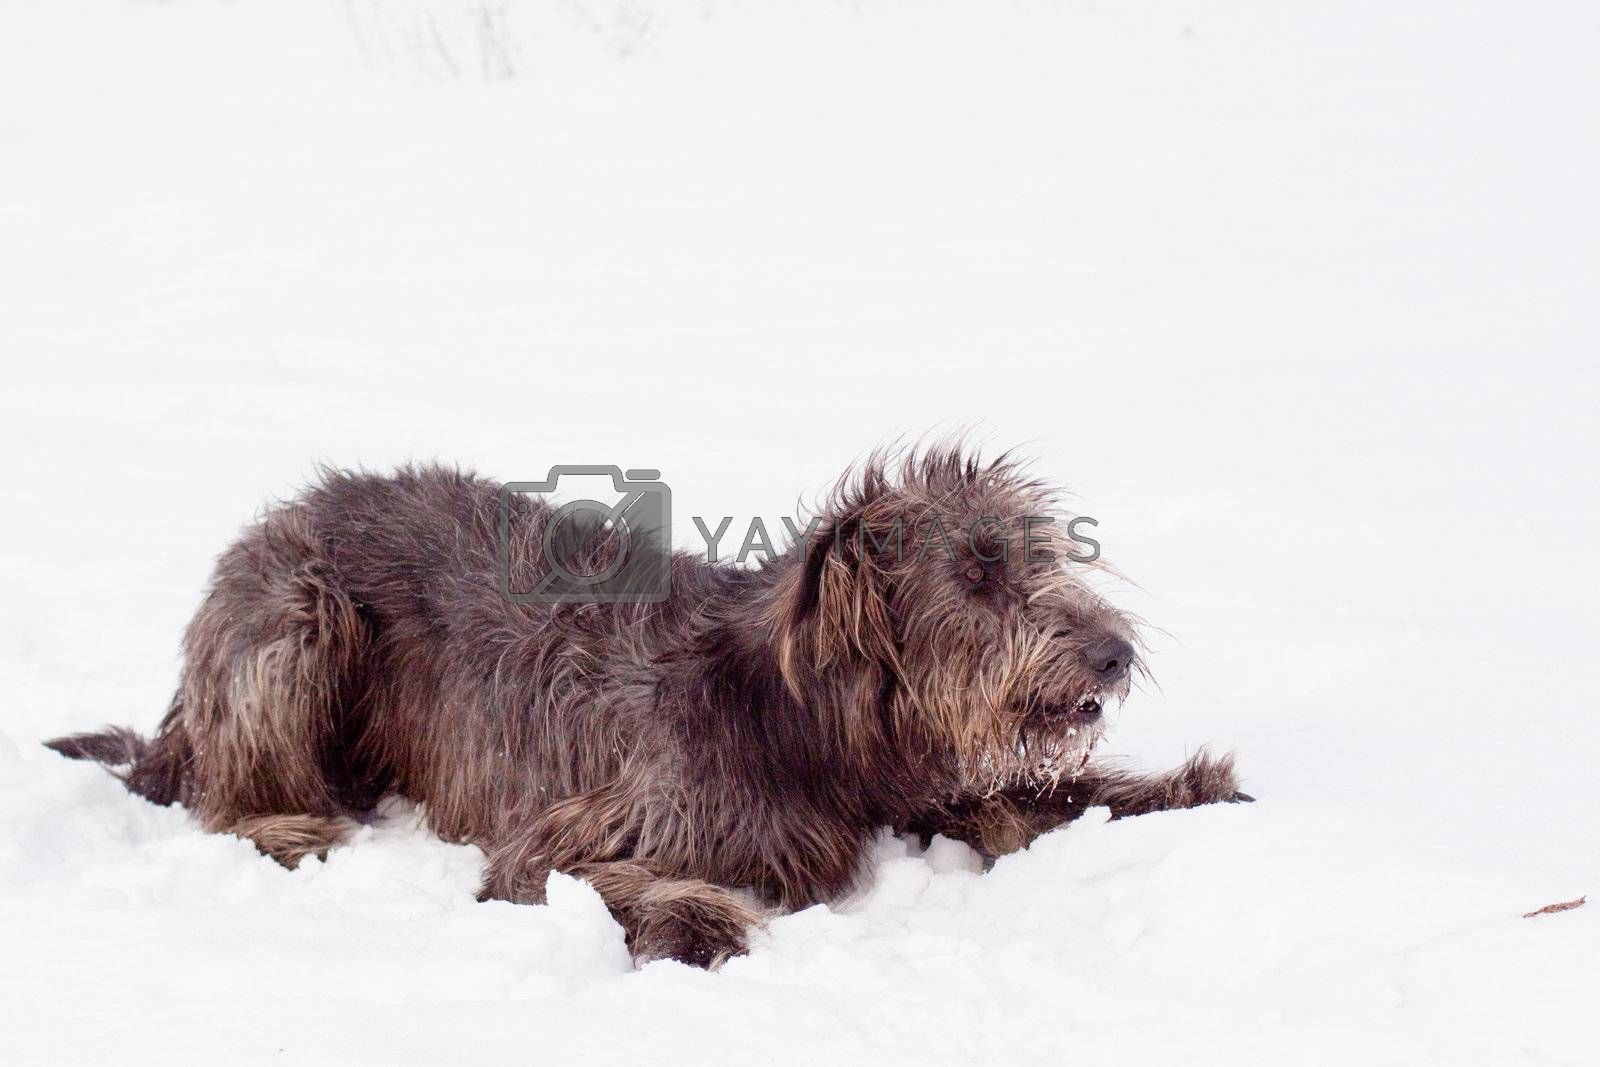 An irish wolfhound lying on a snow-covered field